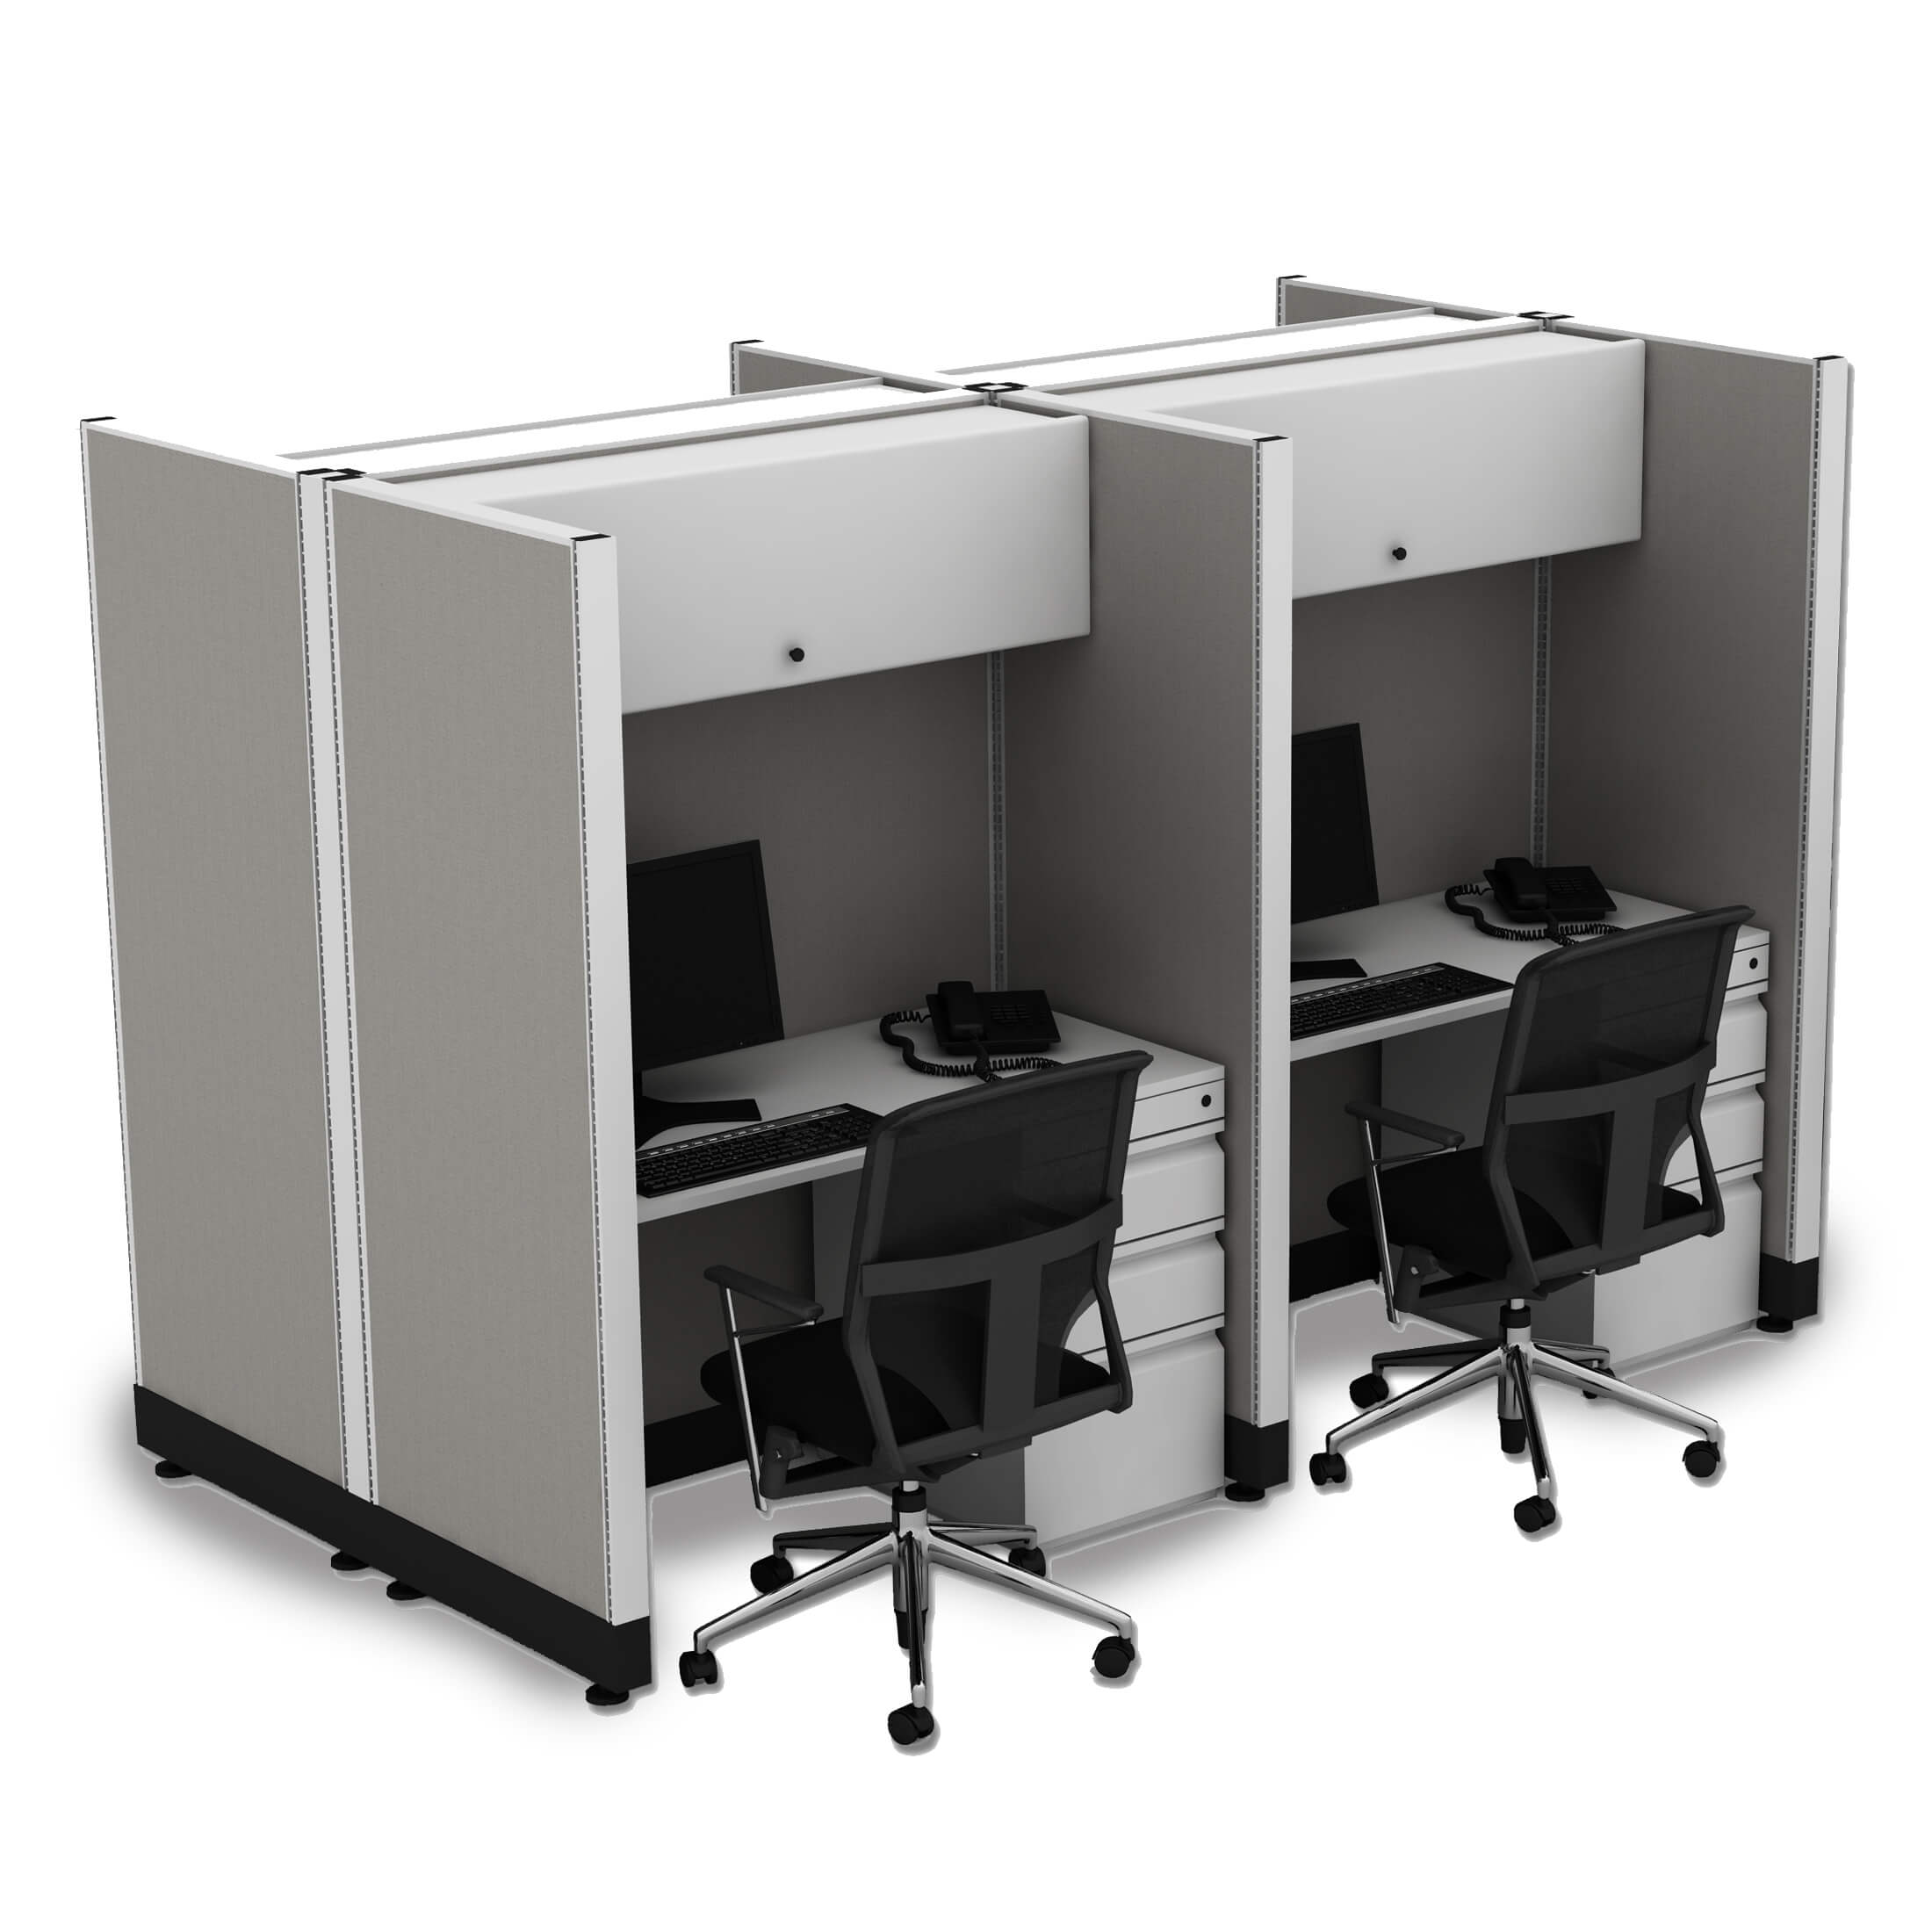 Hot desking hoteling stations 4 pack powered